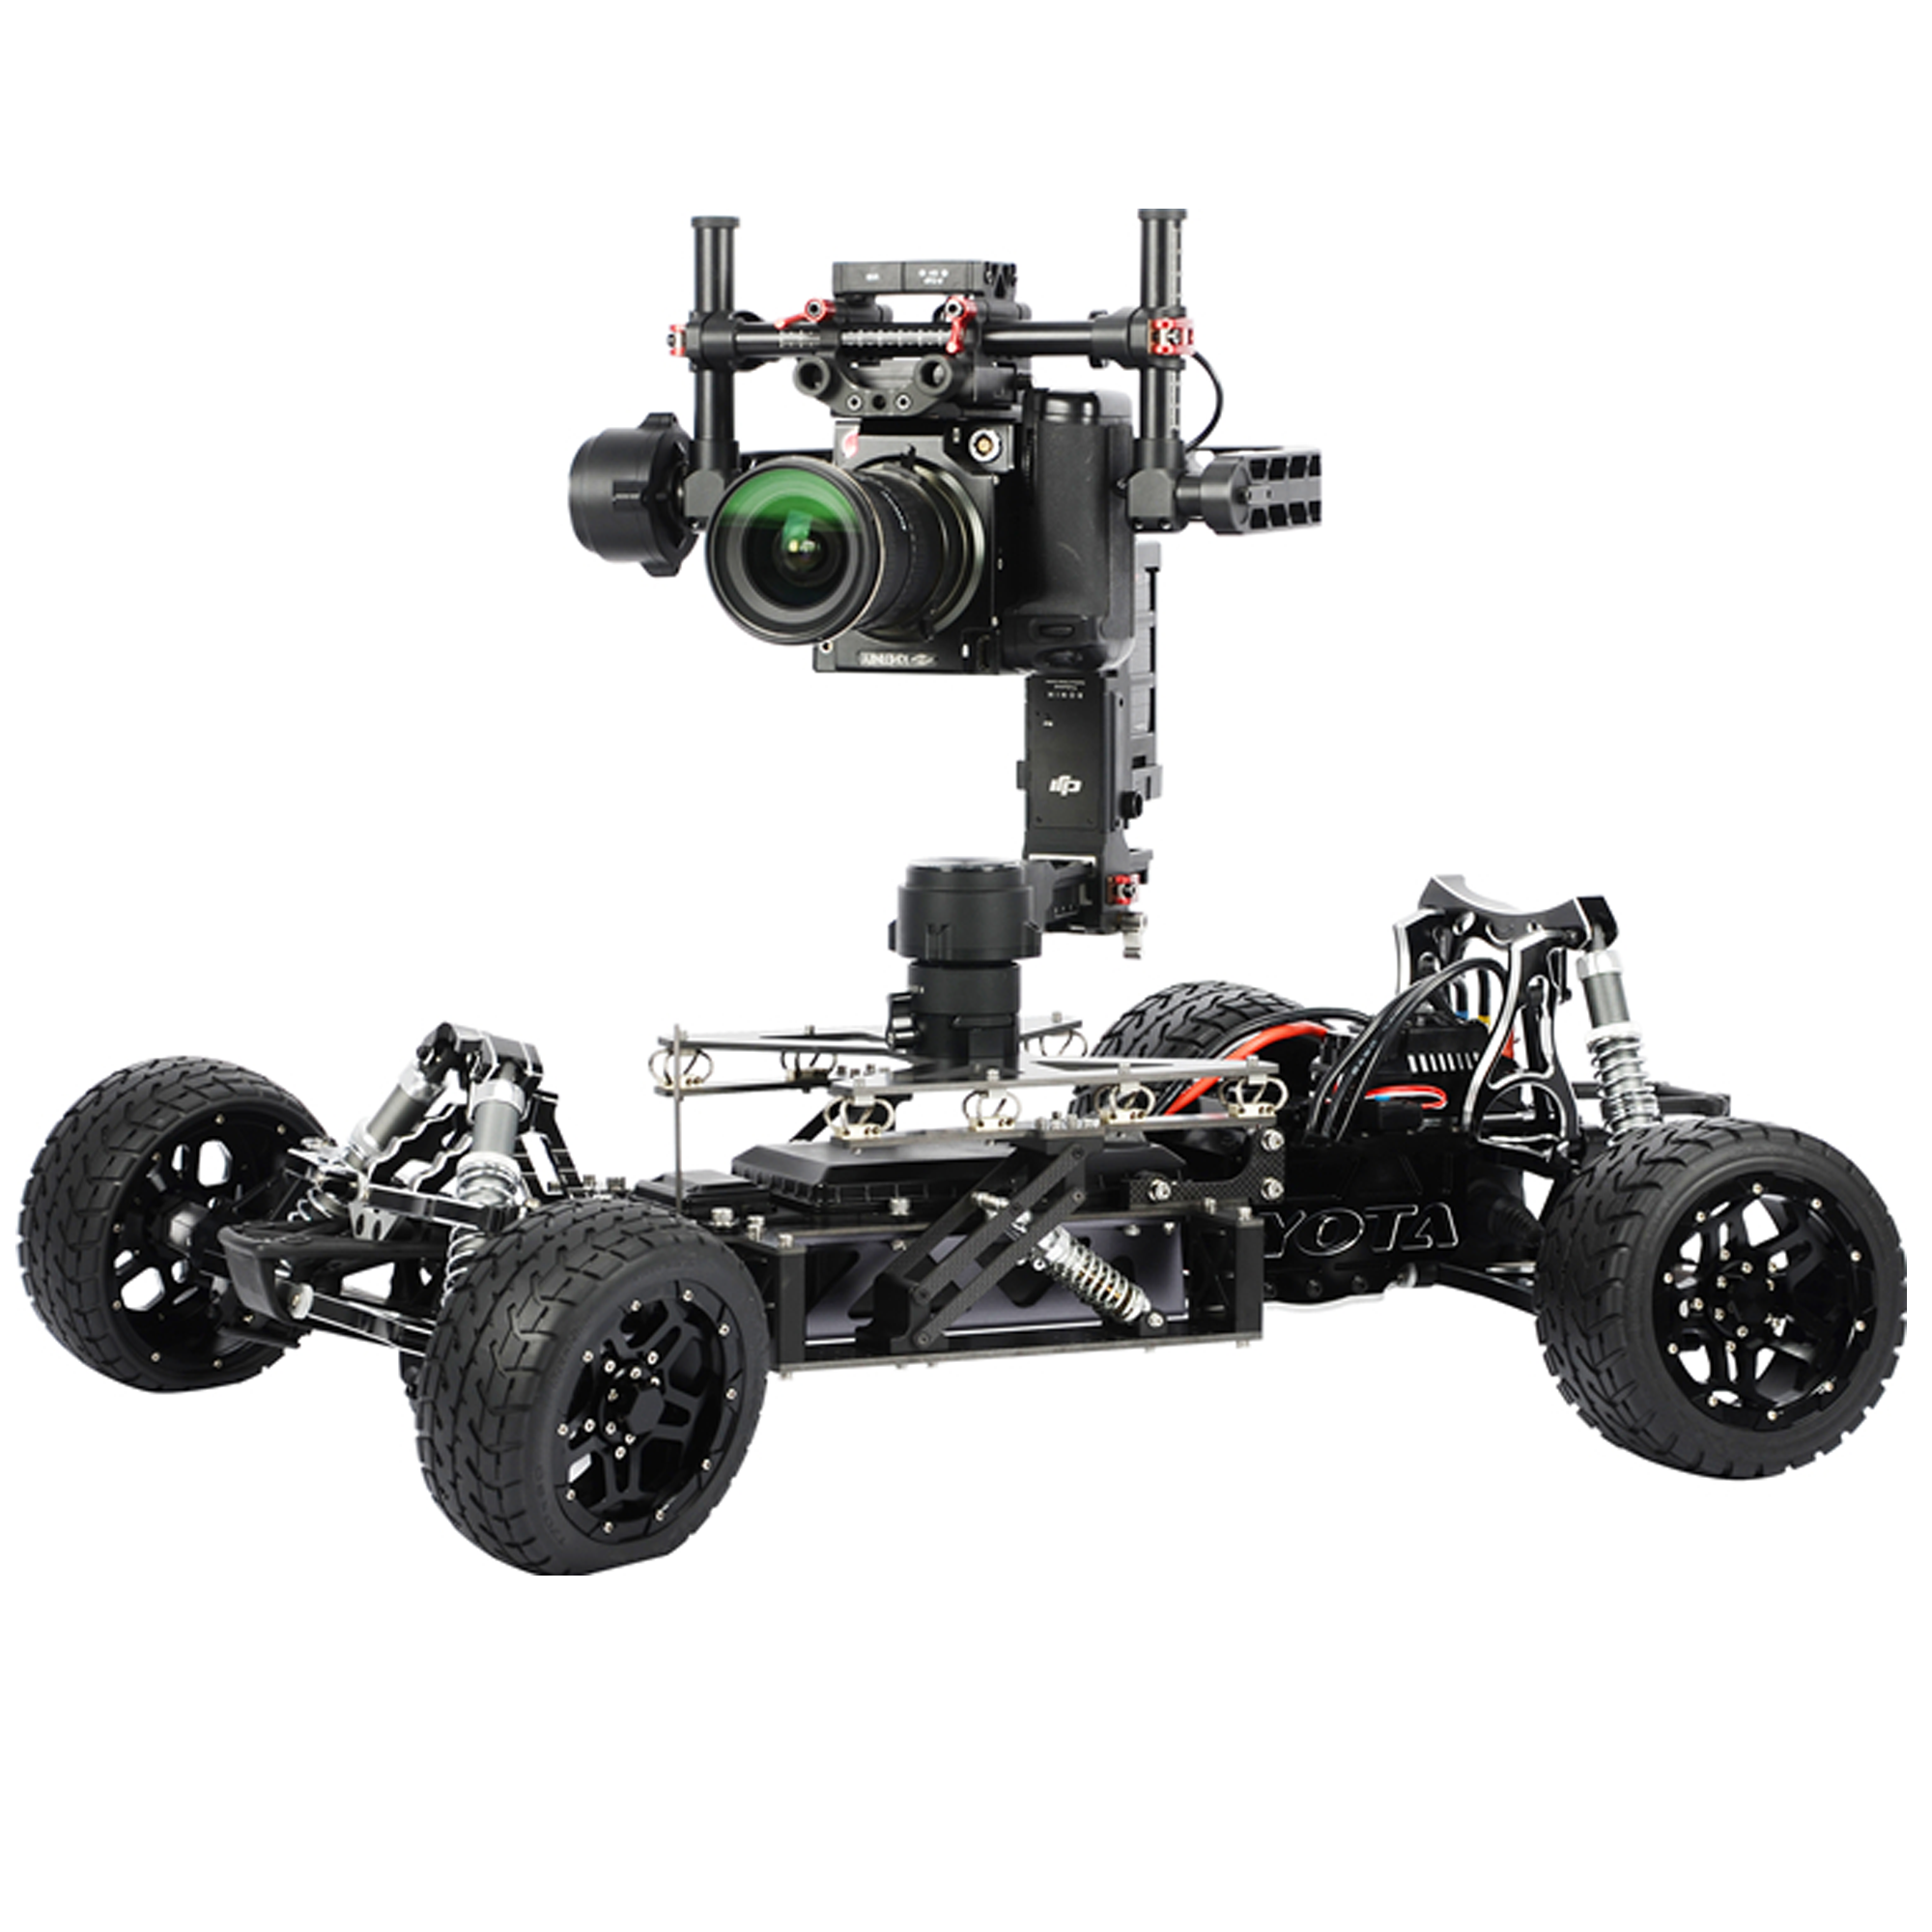 Steadyplus Gimbal Car